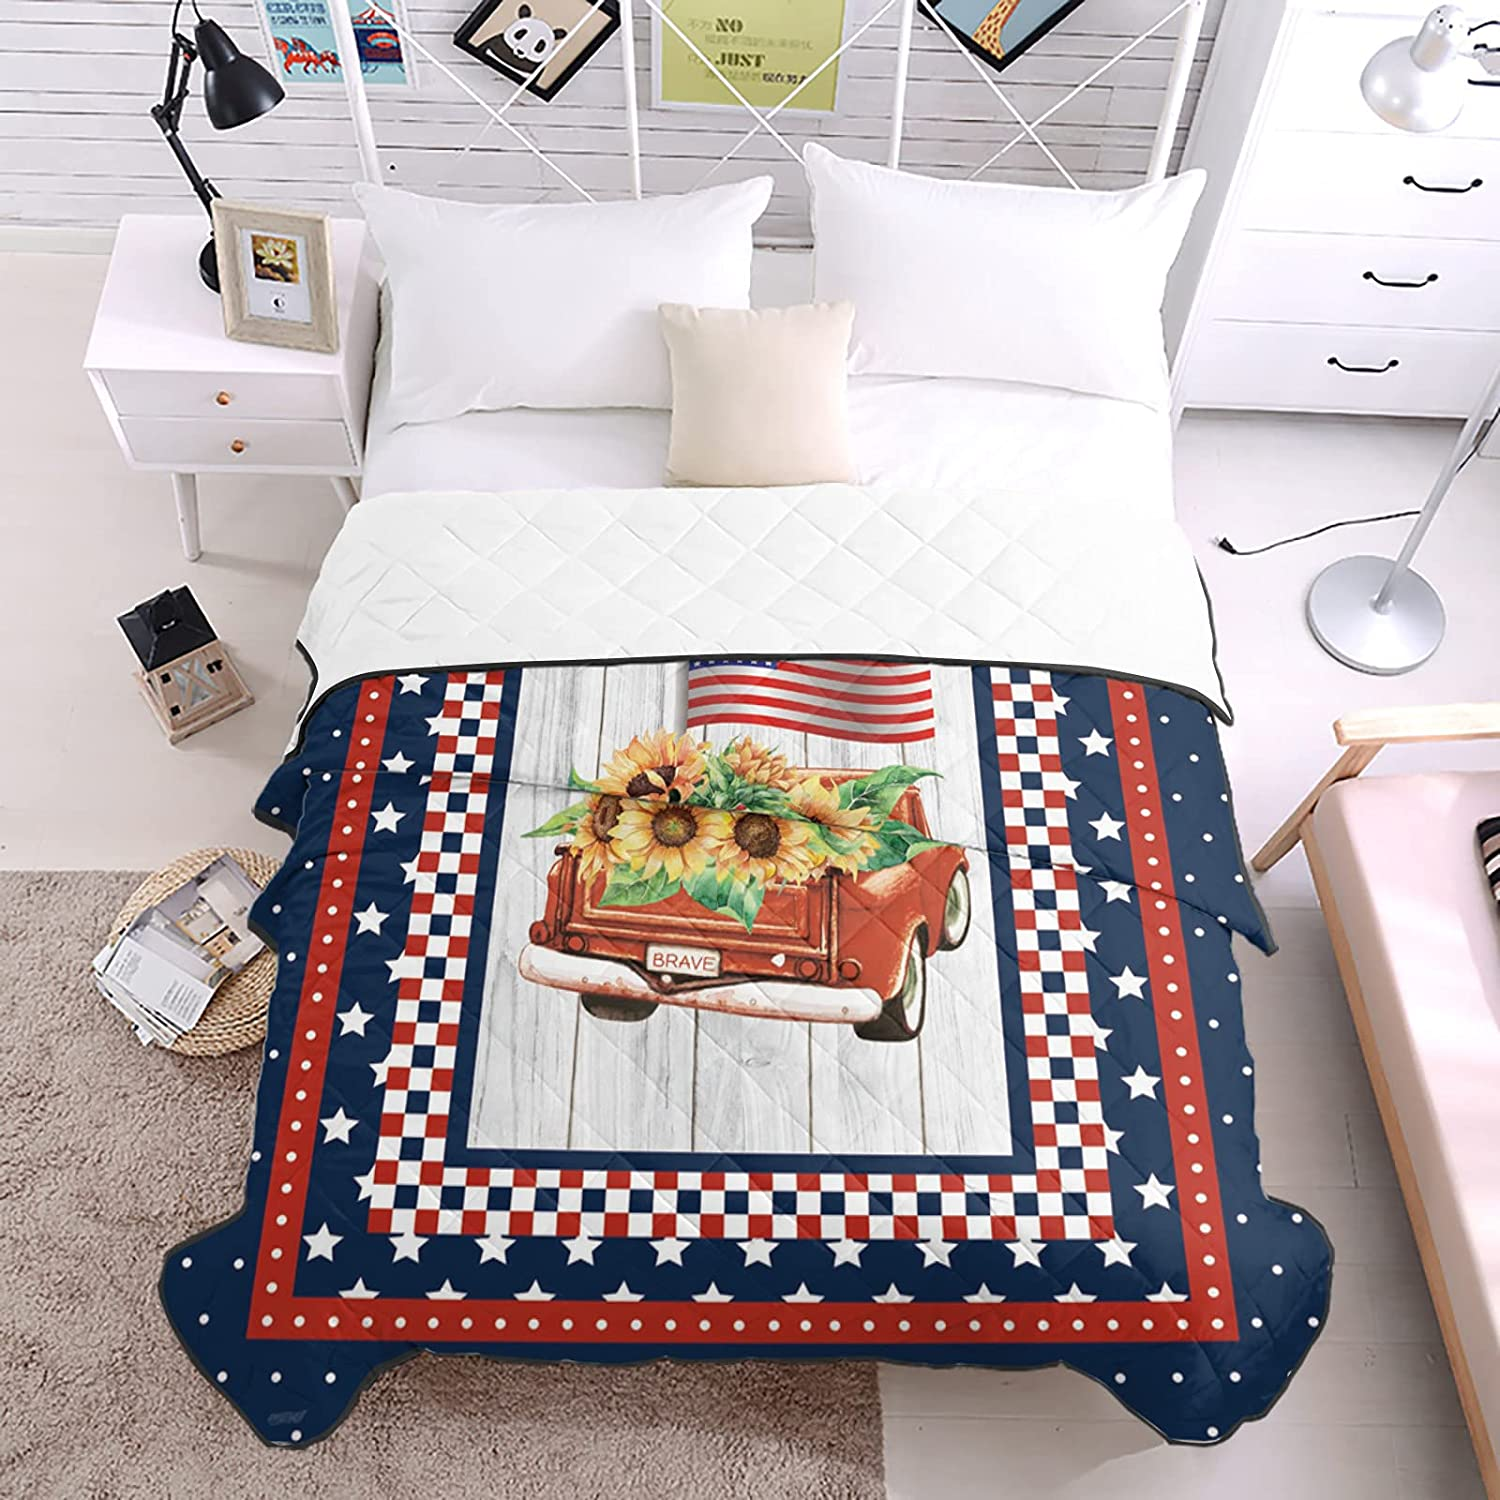 DecorLovee Bedding Duvets Red Max 43% OFF Car Classic Sunflowers All Carries Season